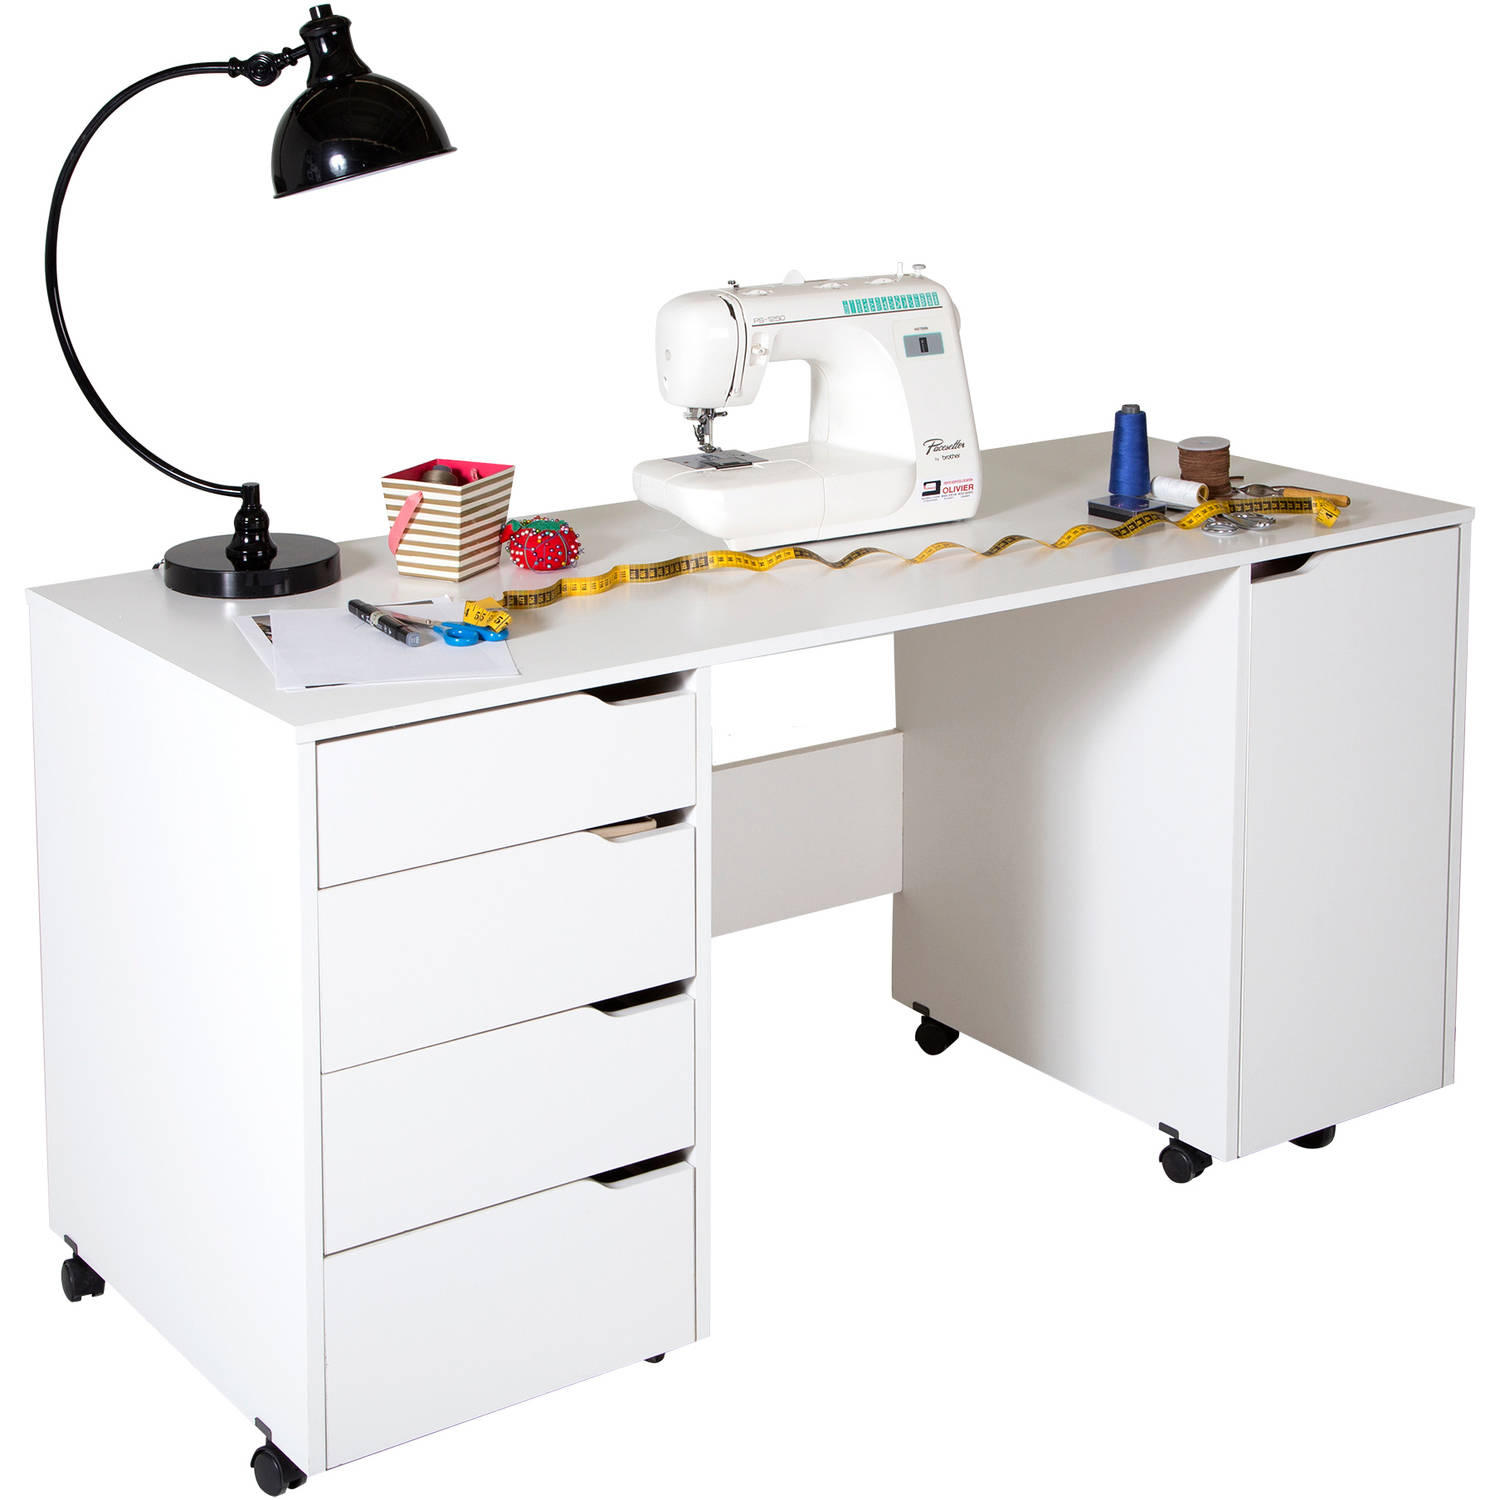 South Shore Crea Sewing Craft Table on Wheels, White